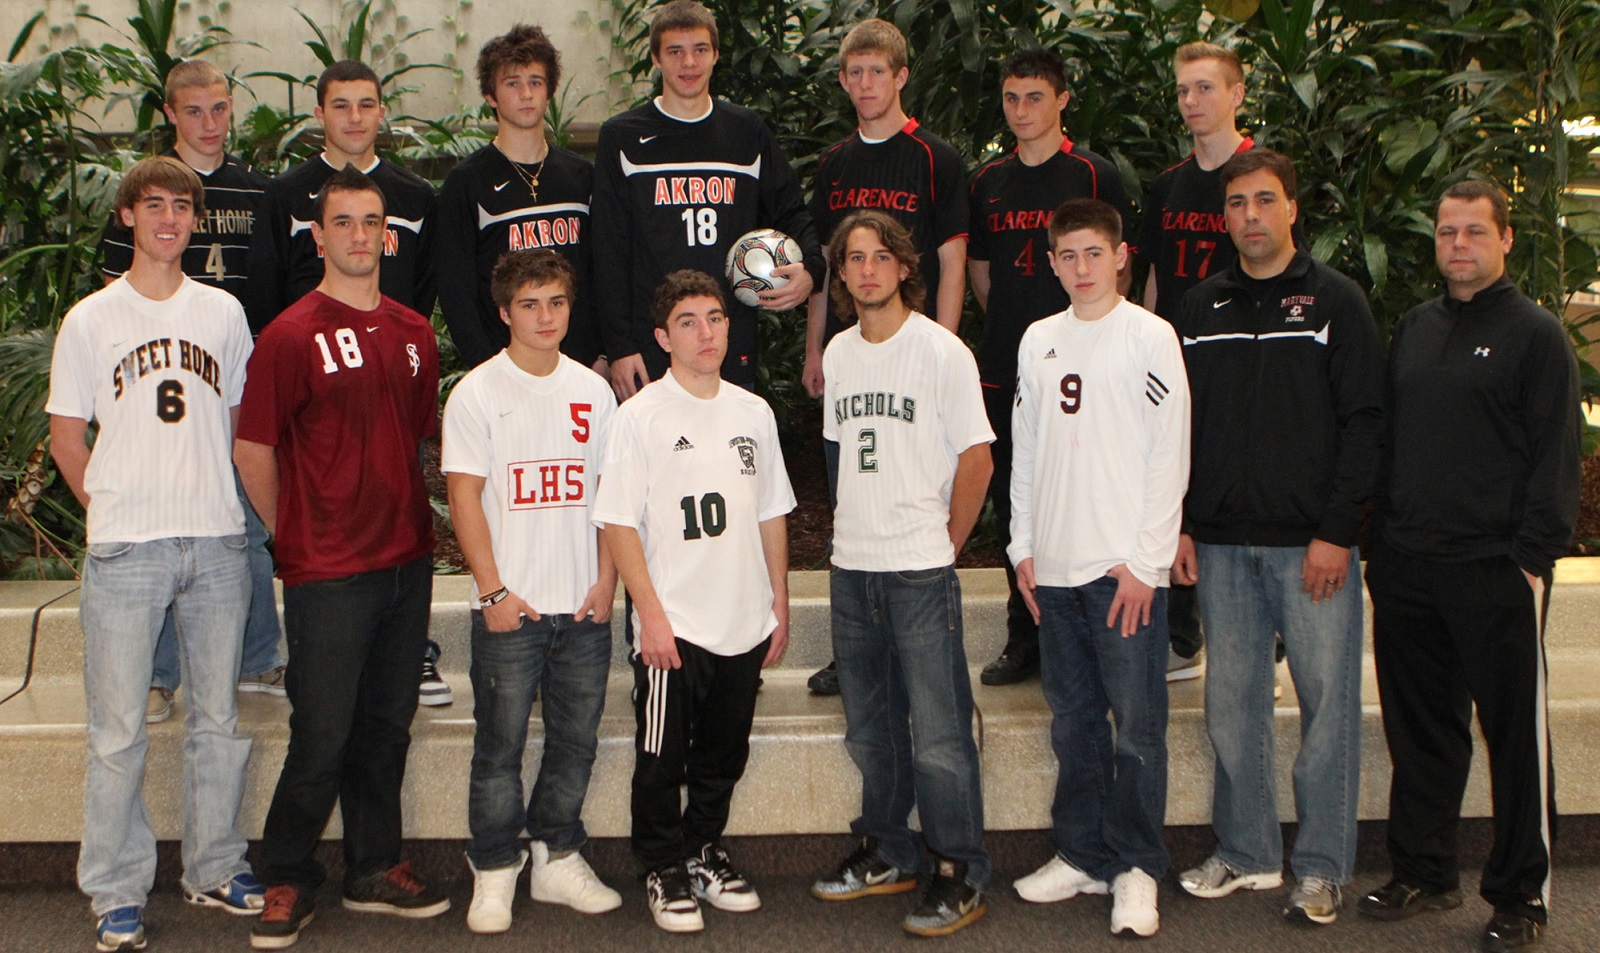 All-Western New York Boys Soccer, 2010. Front row, left to right: Connor Orrico -Sweet Home, Julian Olin -St. Joe's, P.J. Heist – Lancaster, Frankie Valente – Lew-Port, Chris Walter -Nichols, Shawn Powers – Maryvale, Coach of the Year Maryvale Tom Staebell, Referee of the Year Shane Magaris. Top Row: Liam Callahan – Sweet Home, Jaime Salcedo – Akron, Sam Torreli – Akron, Nathan Borchert – Akron, Ryan Schroen – Clarence, Derek Maier – Clarence, Chris Berardi – Clarence. (John Hickey/Buffalo News)